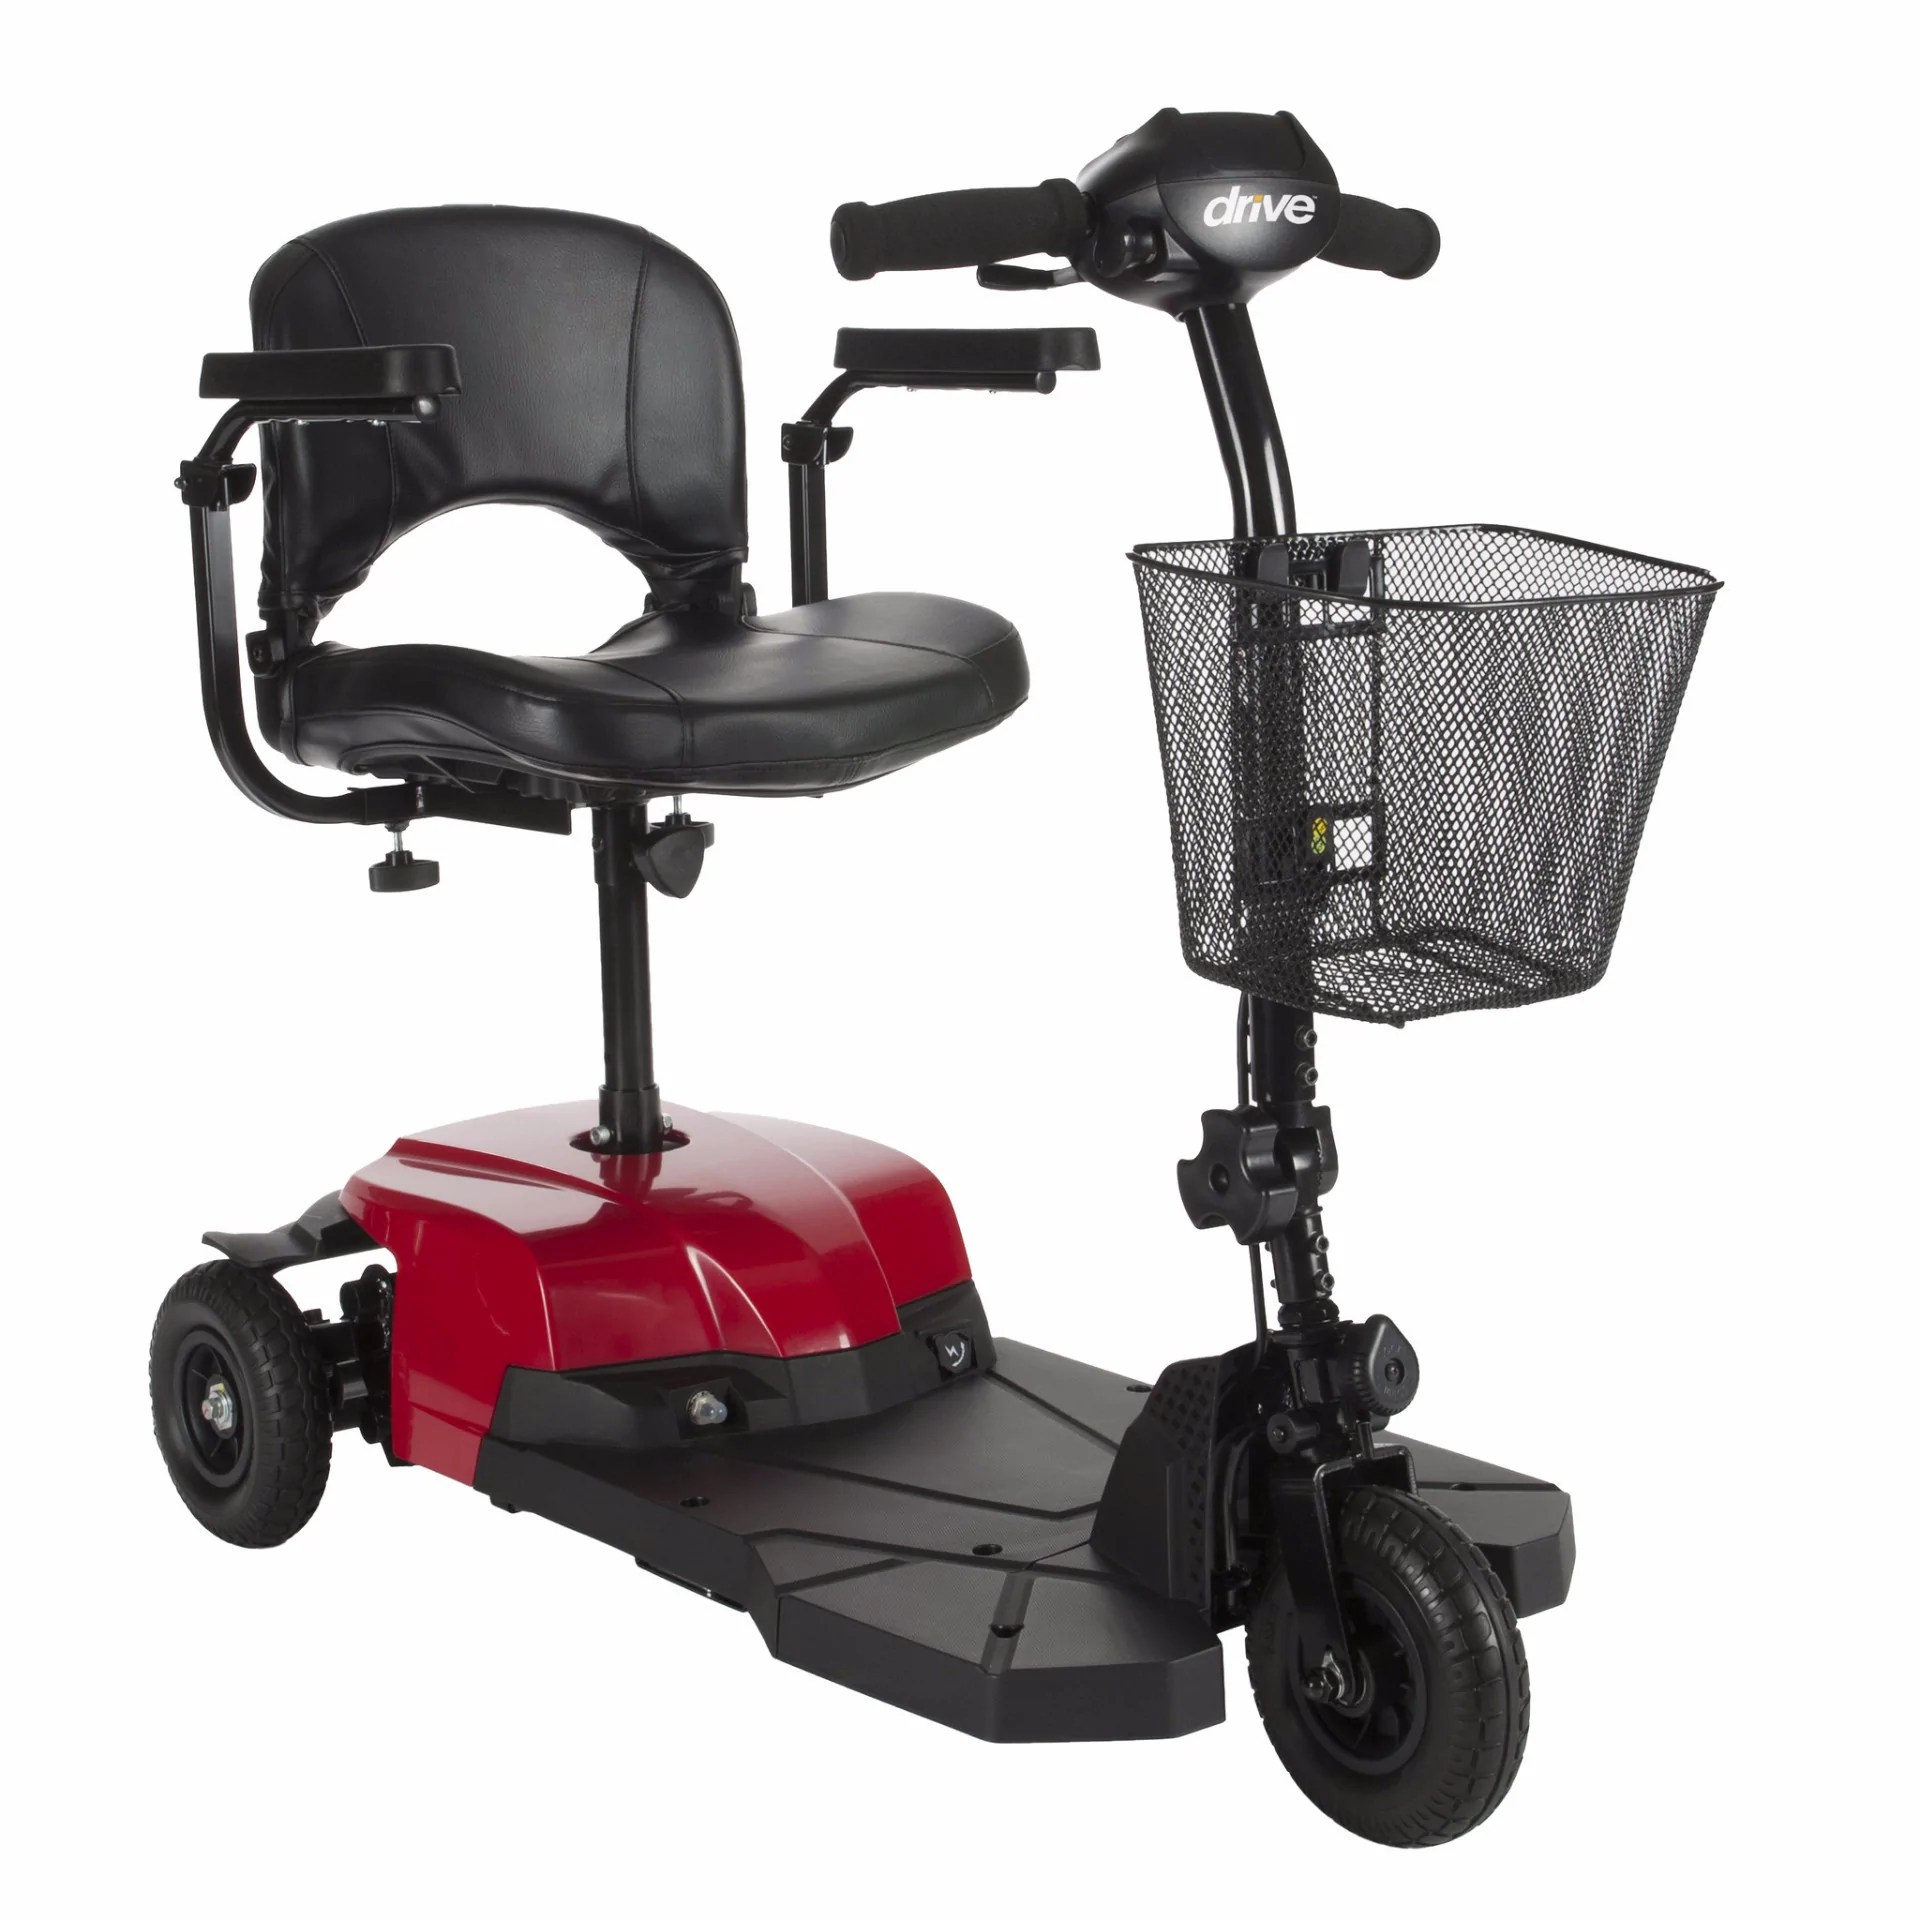 x3 wheelchair gci outdoor pico arm chair navy bobcat compact transportable power mobility scooter 3